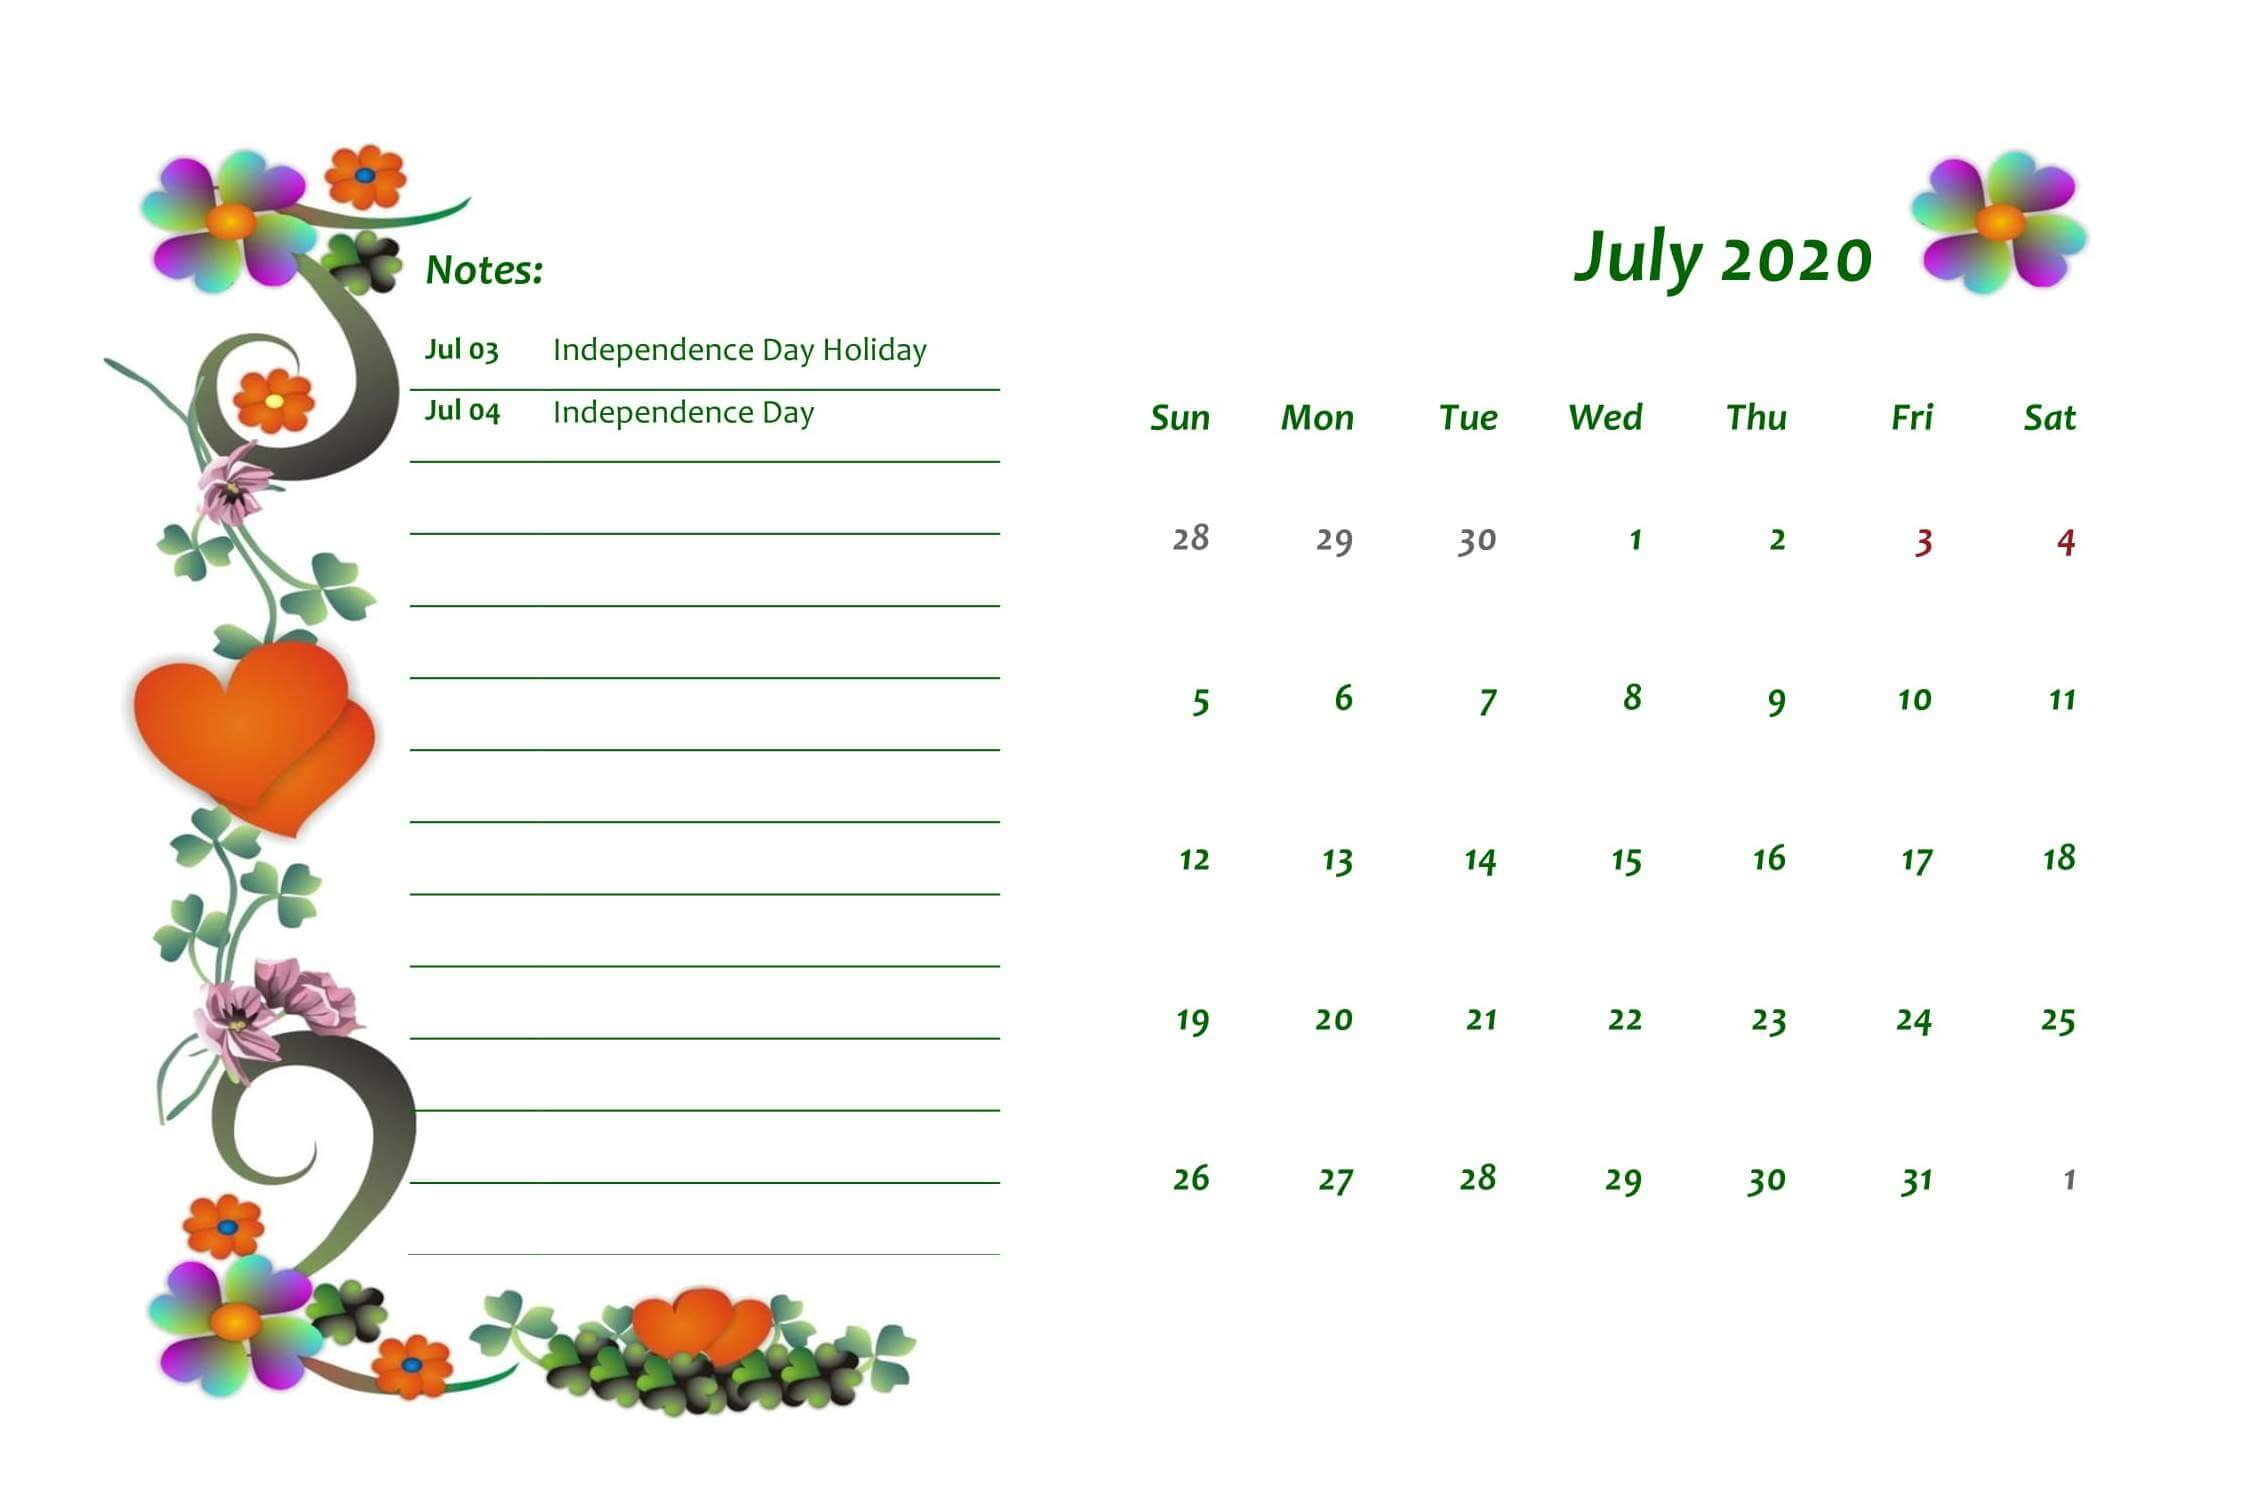 Holidays Calendar July 2020